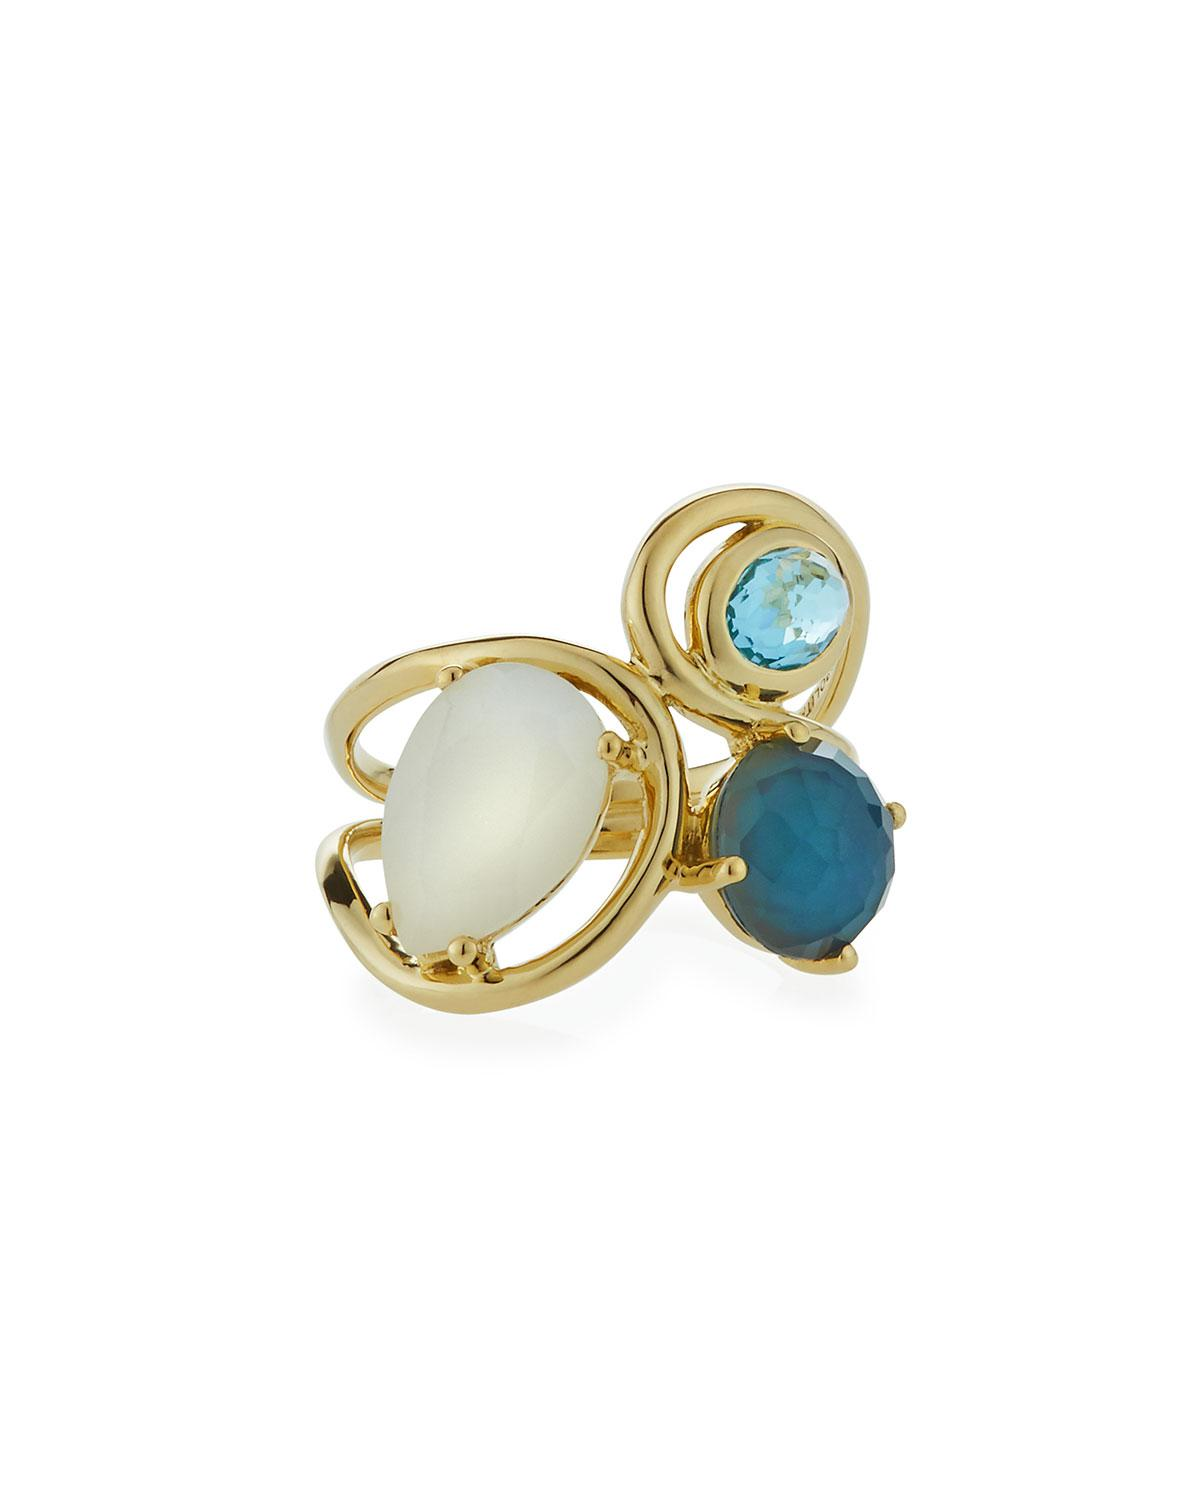 Ippolita 18K Rock Candy Squiggle Ring in Waterfall, Size 7